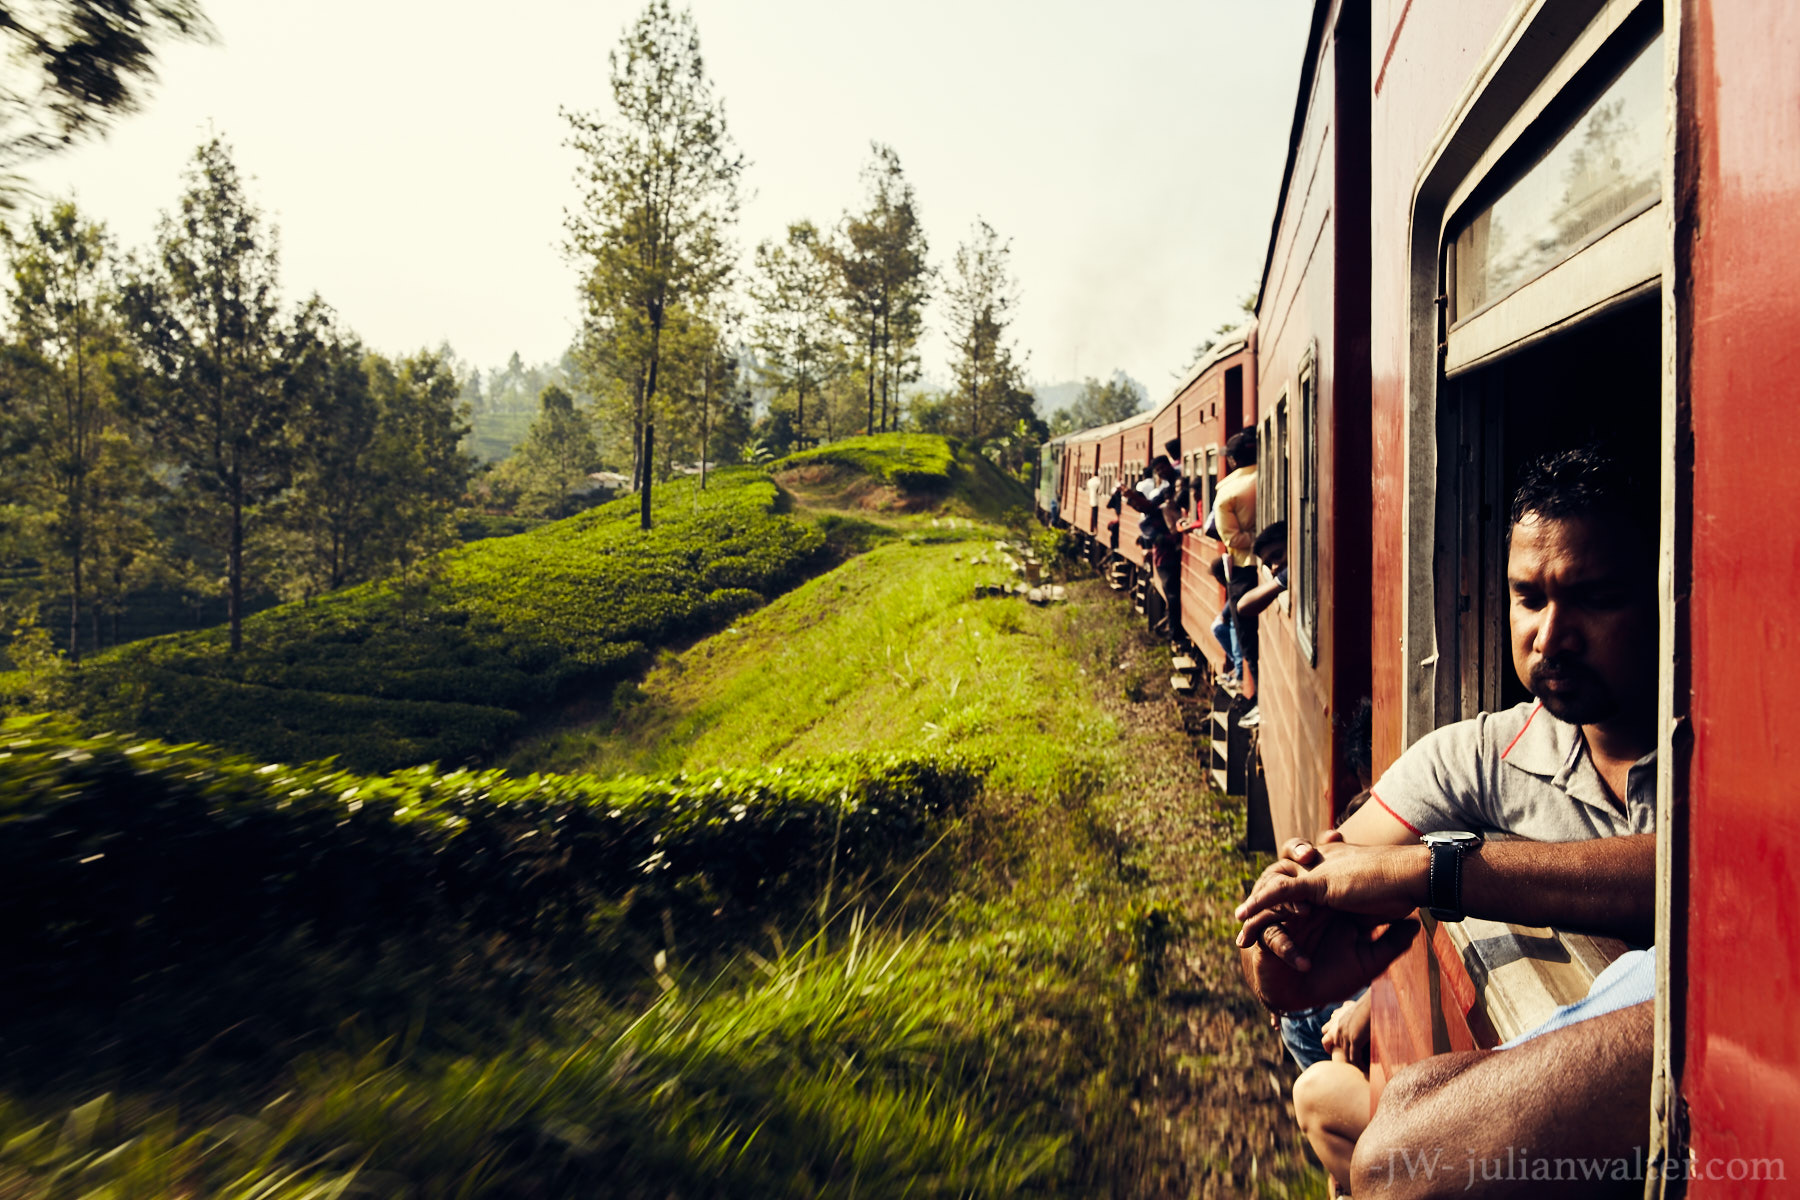 Sri Lanka Trains - Julian Walter Photography